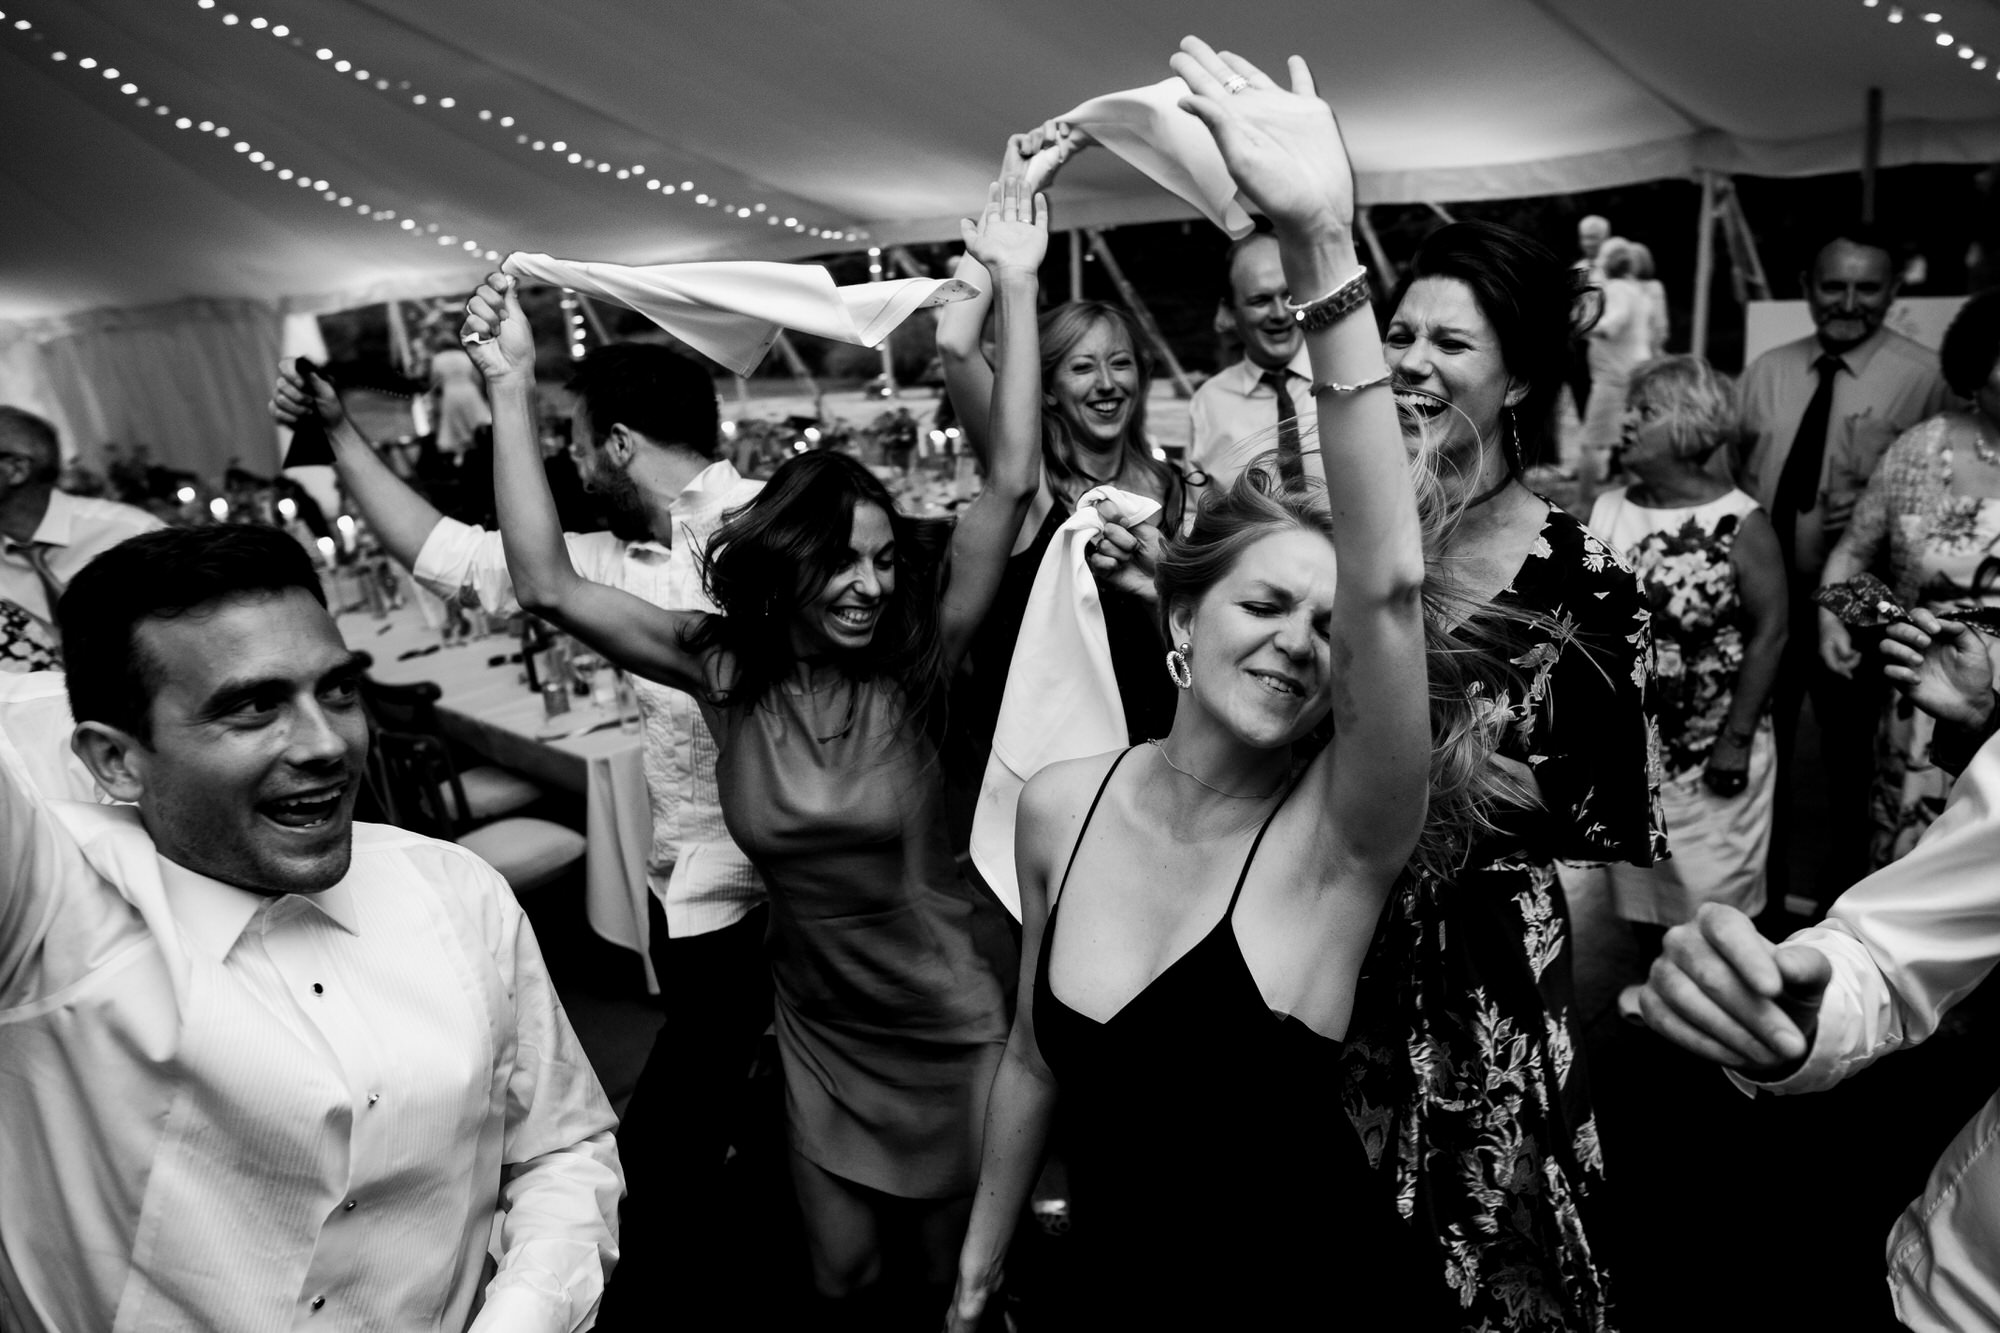 Party goers raise arms on the dance floor